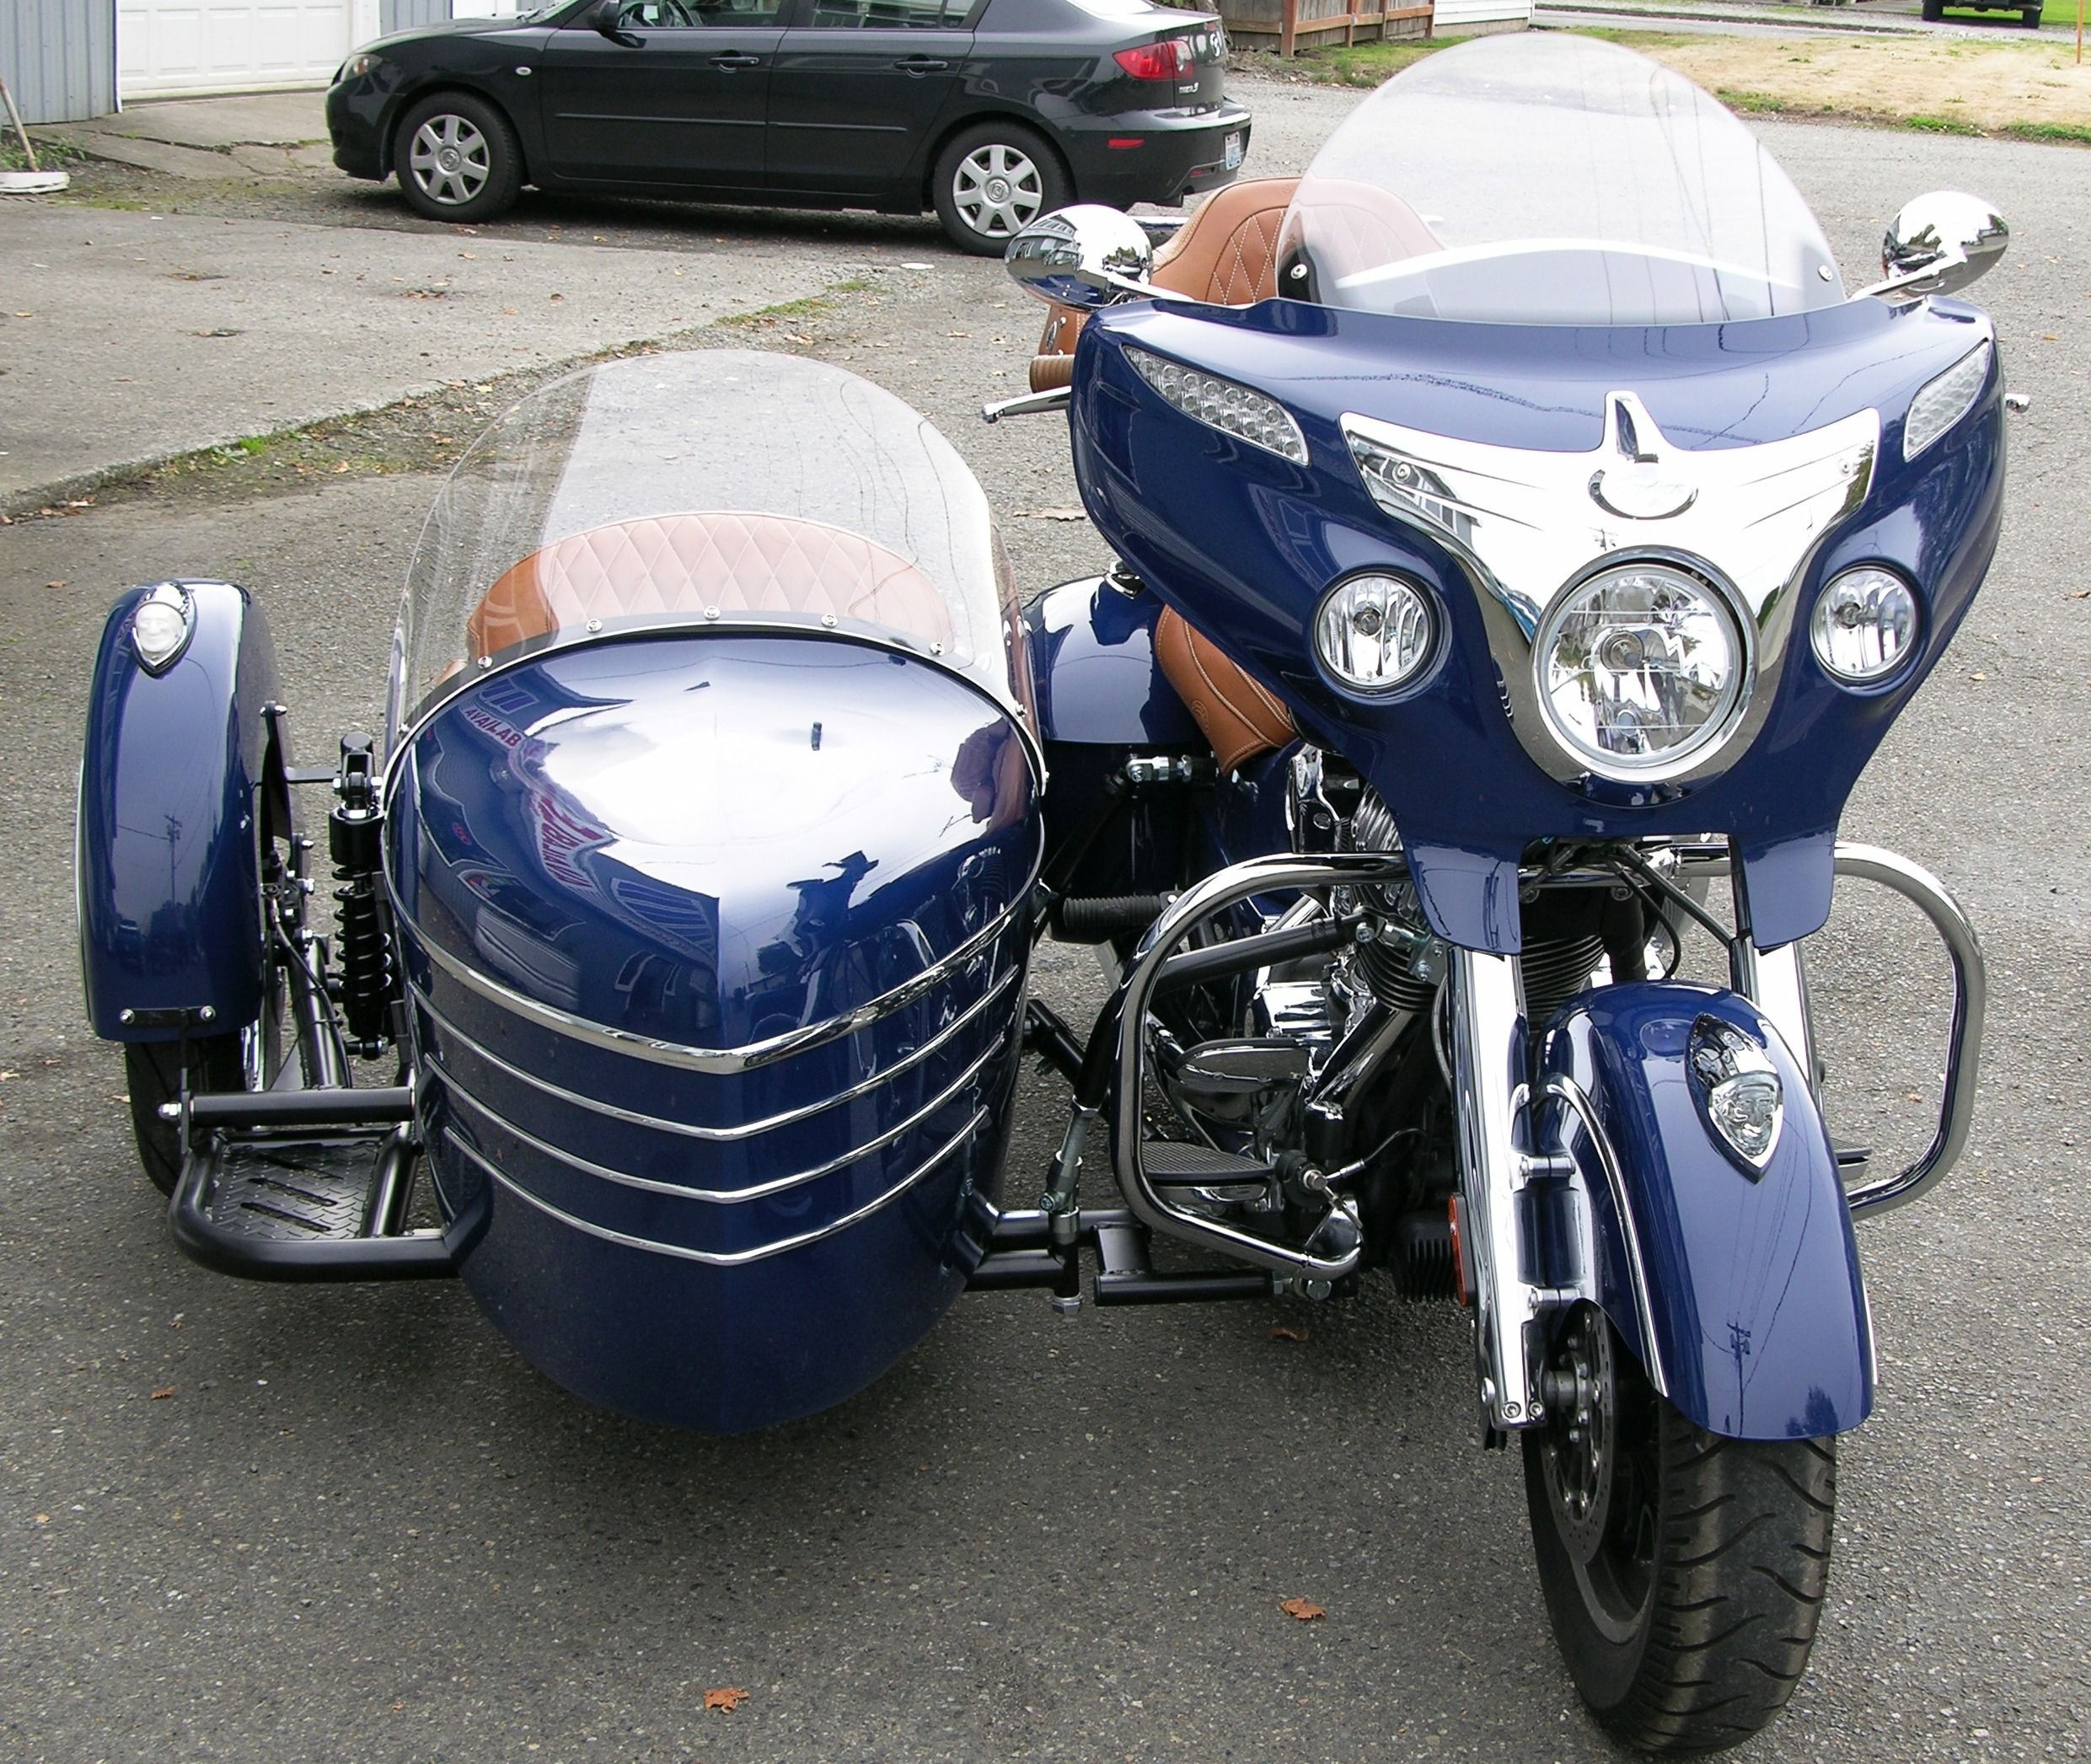 Indian roadmaster with a tomahawk se sidecar